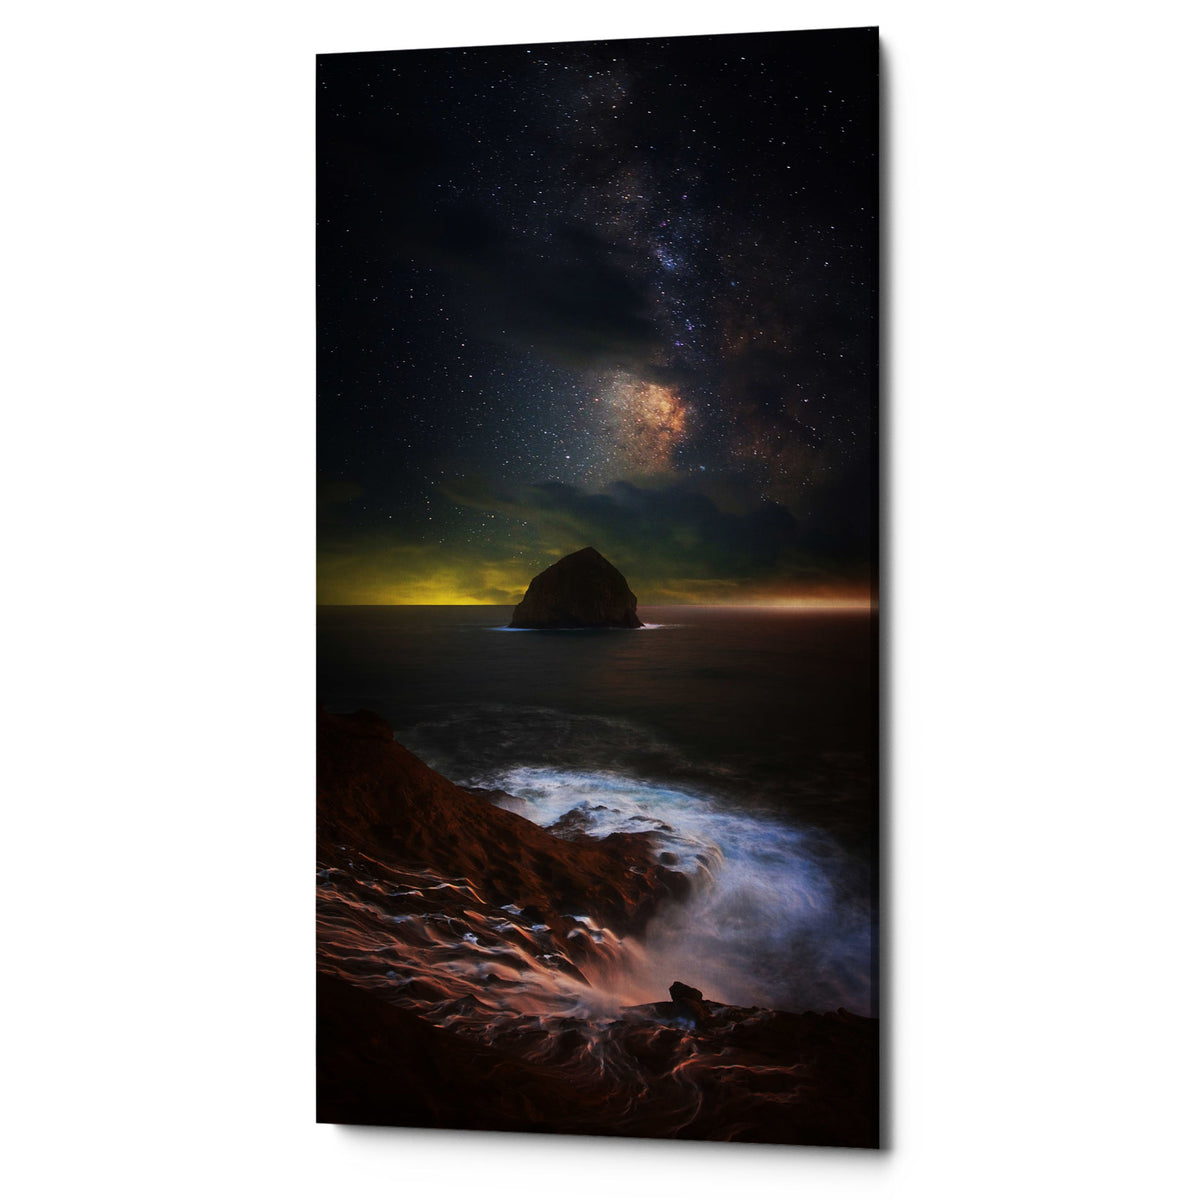 "Epic Graffiti ""Kiwanda Skies"" by Darren White, Giclee Canvas Wall Art"